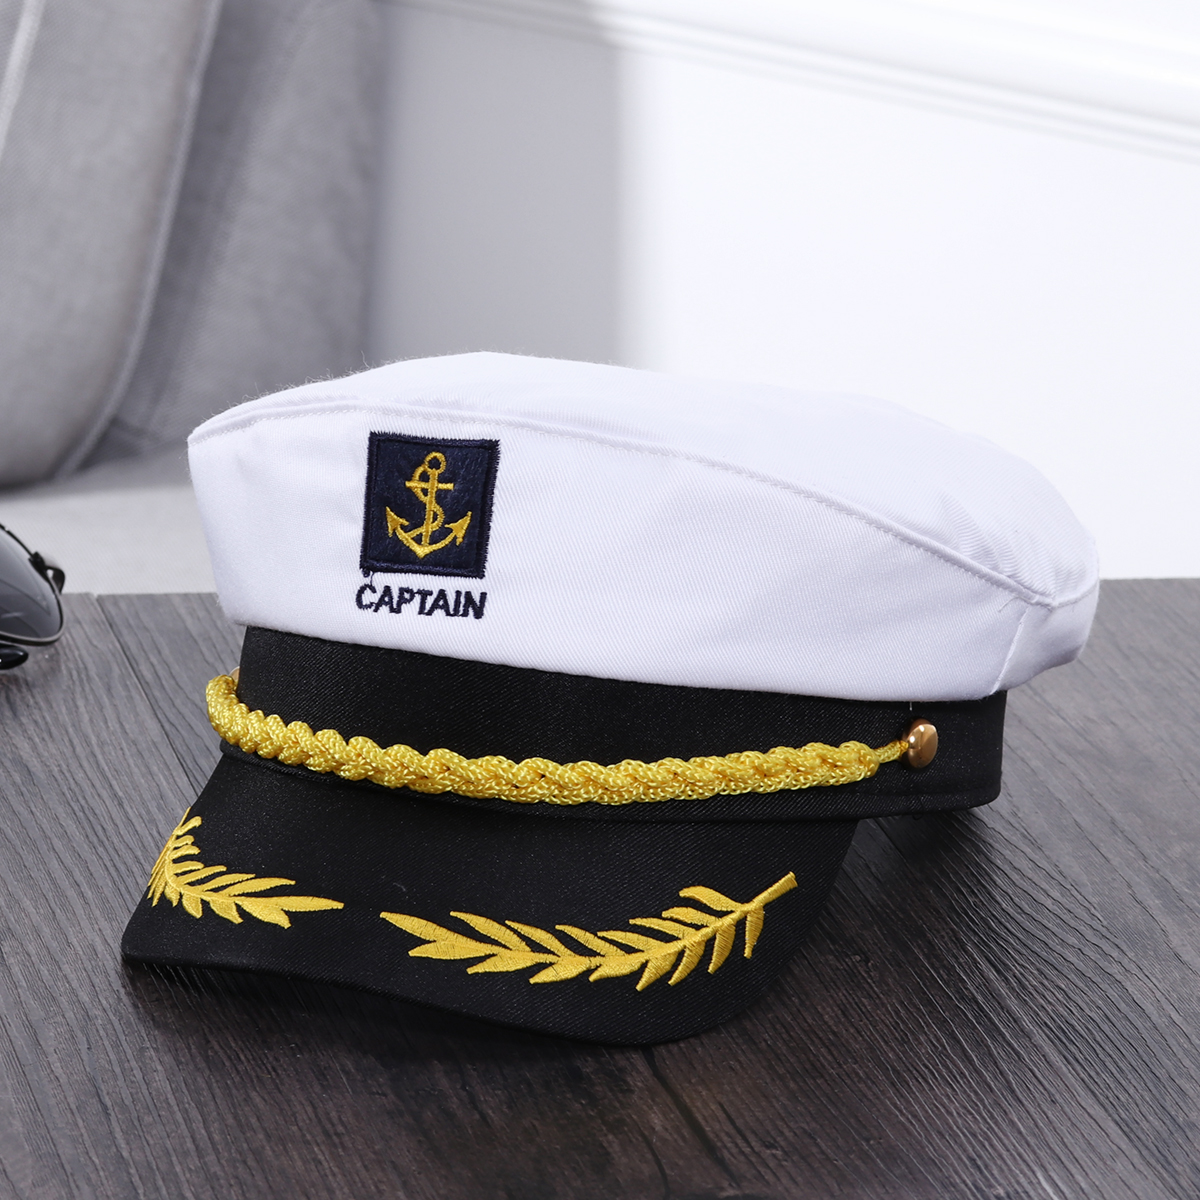 ADULT YACHT BOAT SHIP SAILOR CAPTAIN COSTUME HAT CAP NAVY MARINE ADMIRAL WHITE